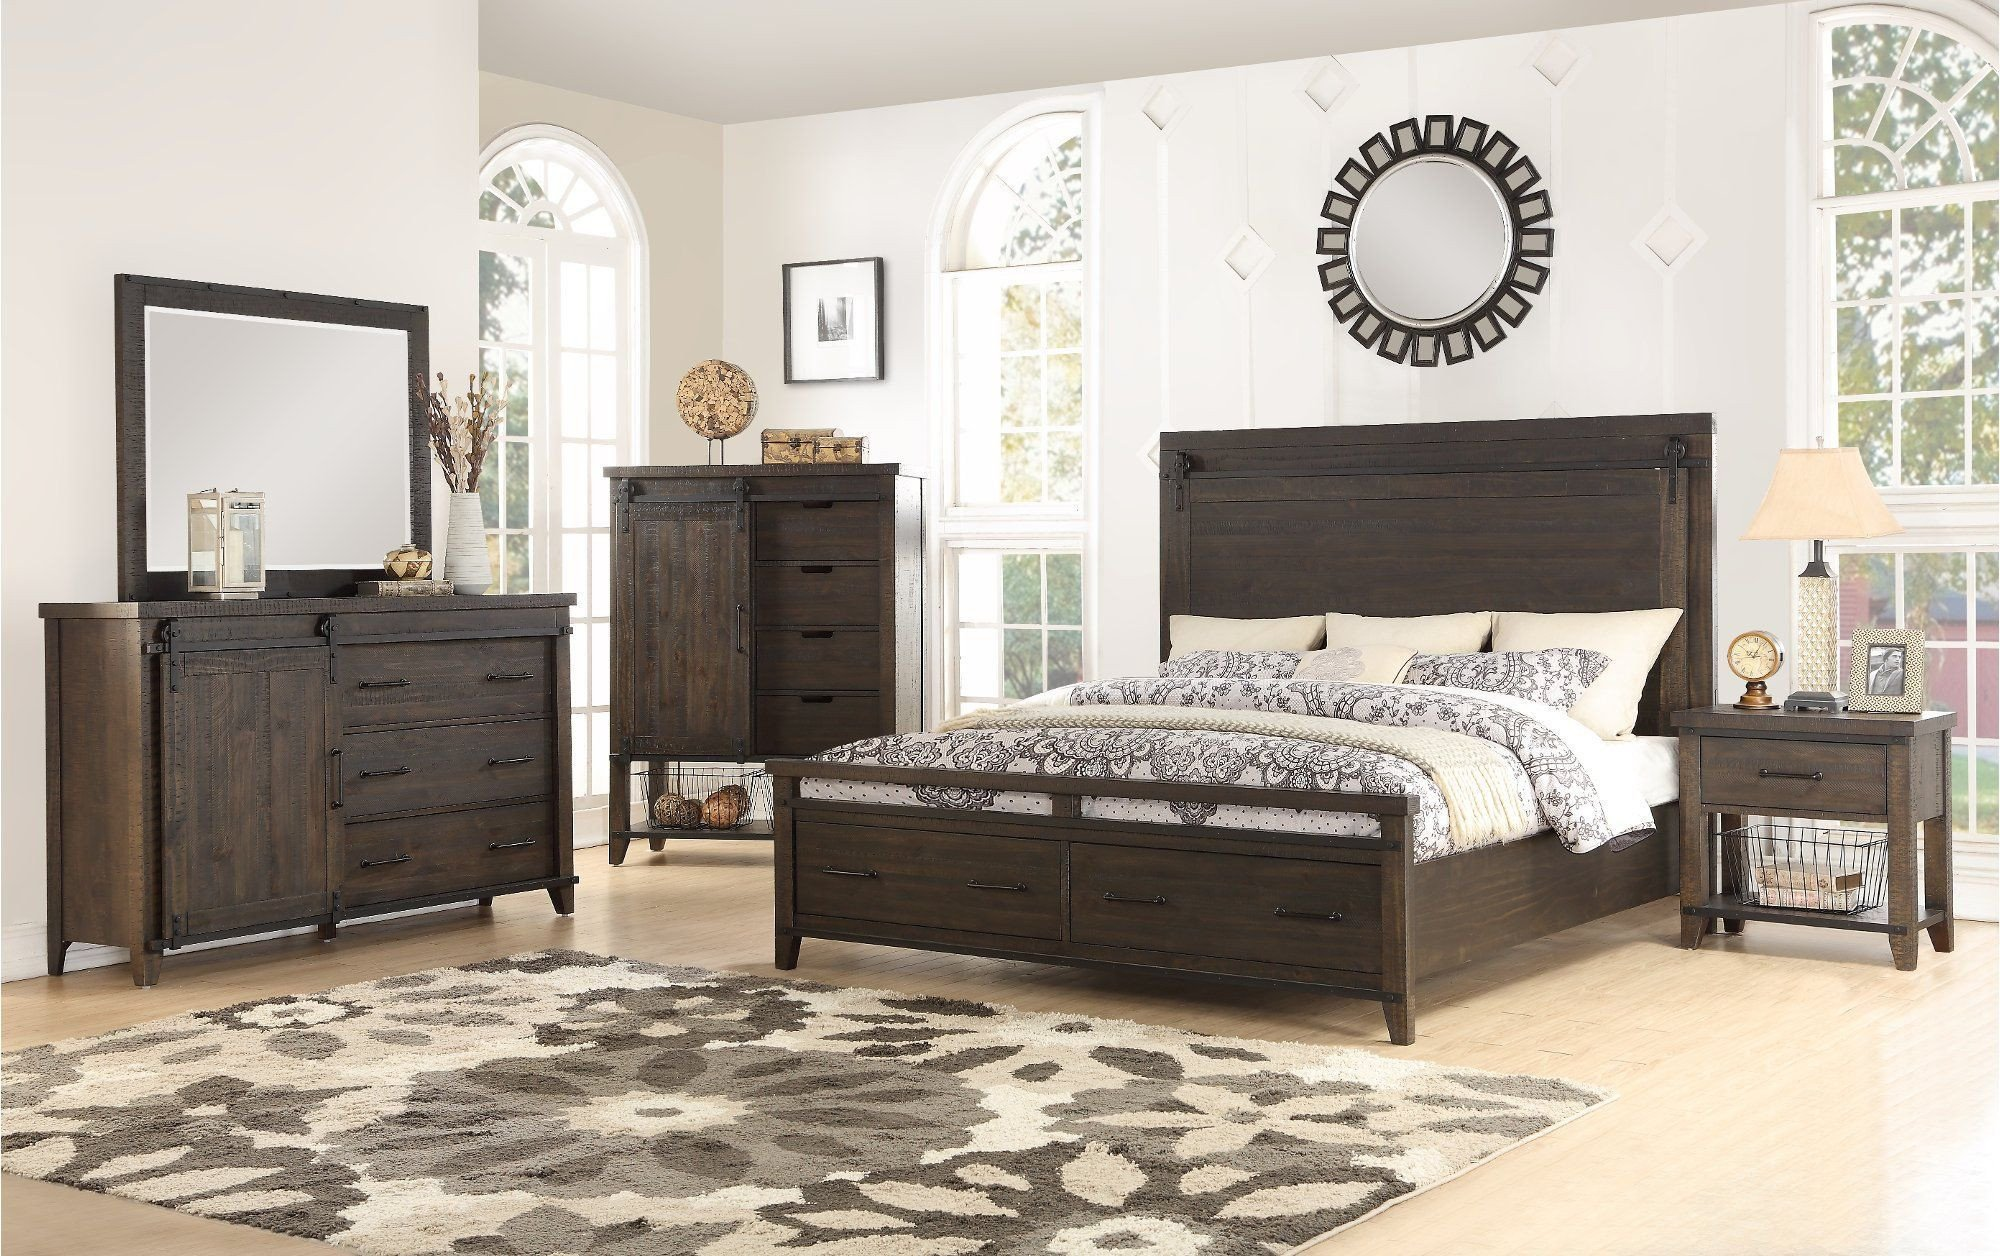 Rustic Queen Bedroom Set Awesome Rustic Contemporary Brown 4 Piece King Bedroom Set Montana